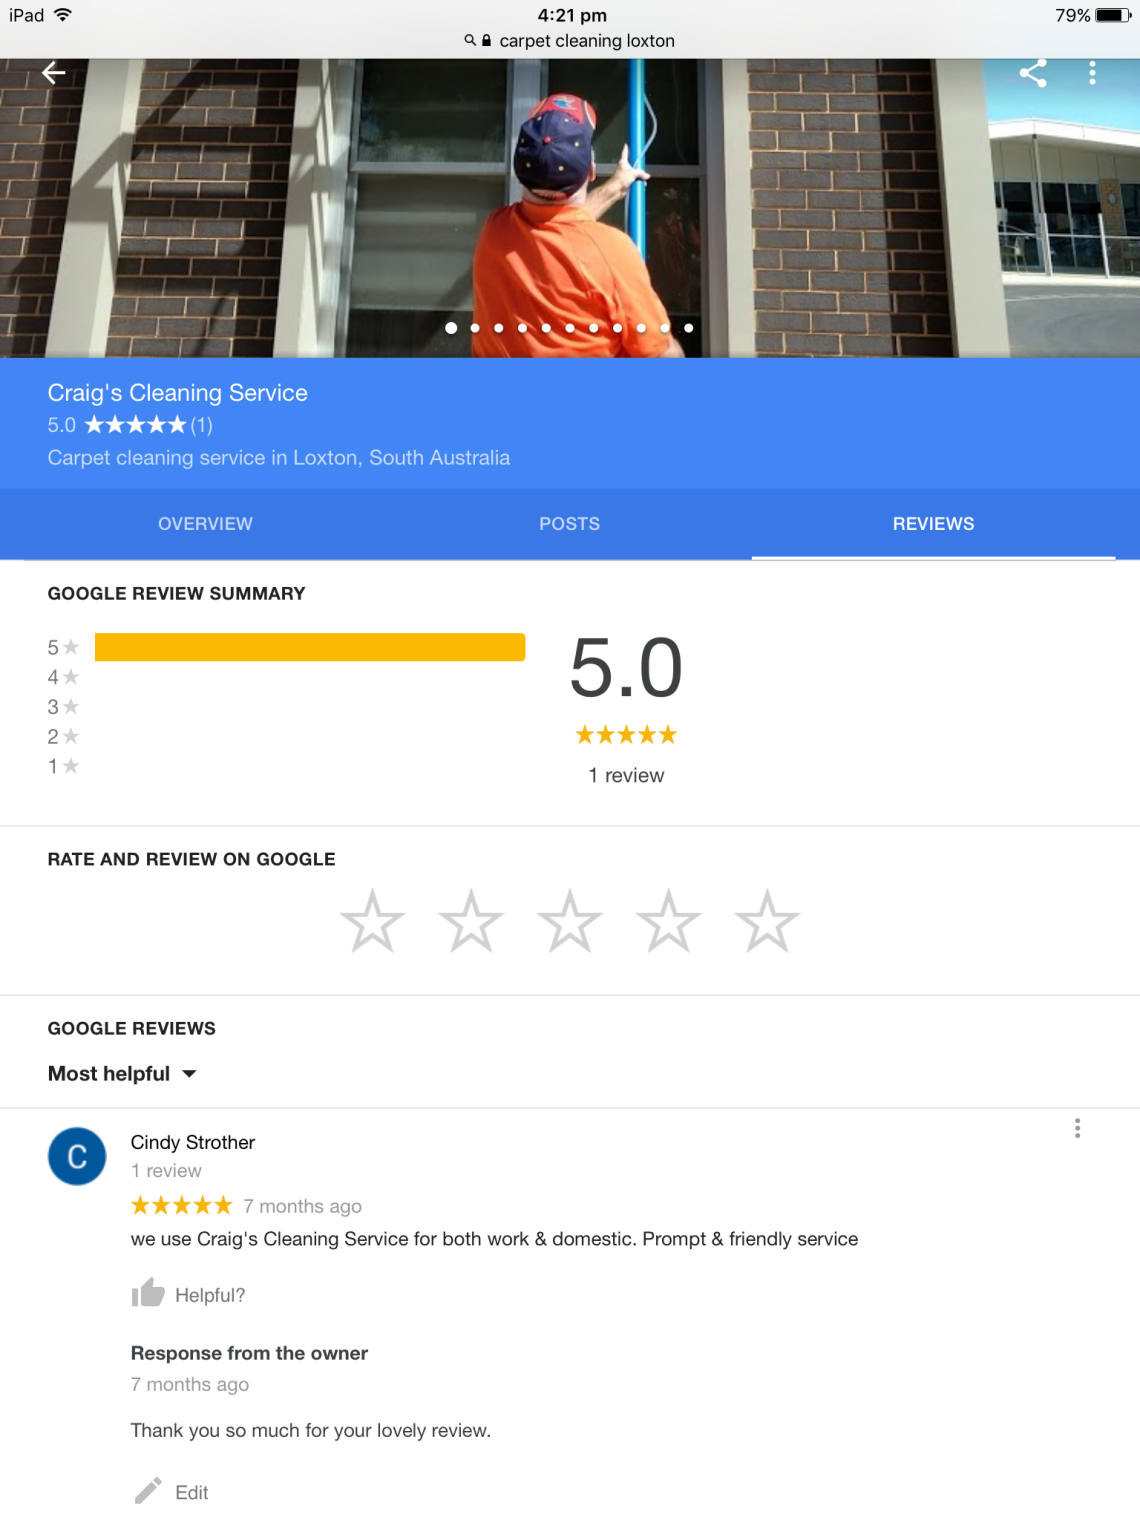 Google Reviews for Craig's Cleaning Service.